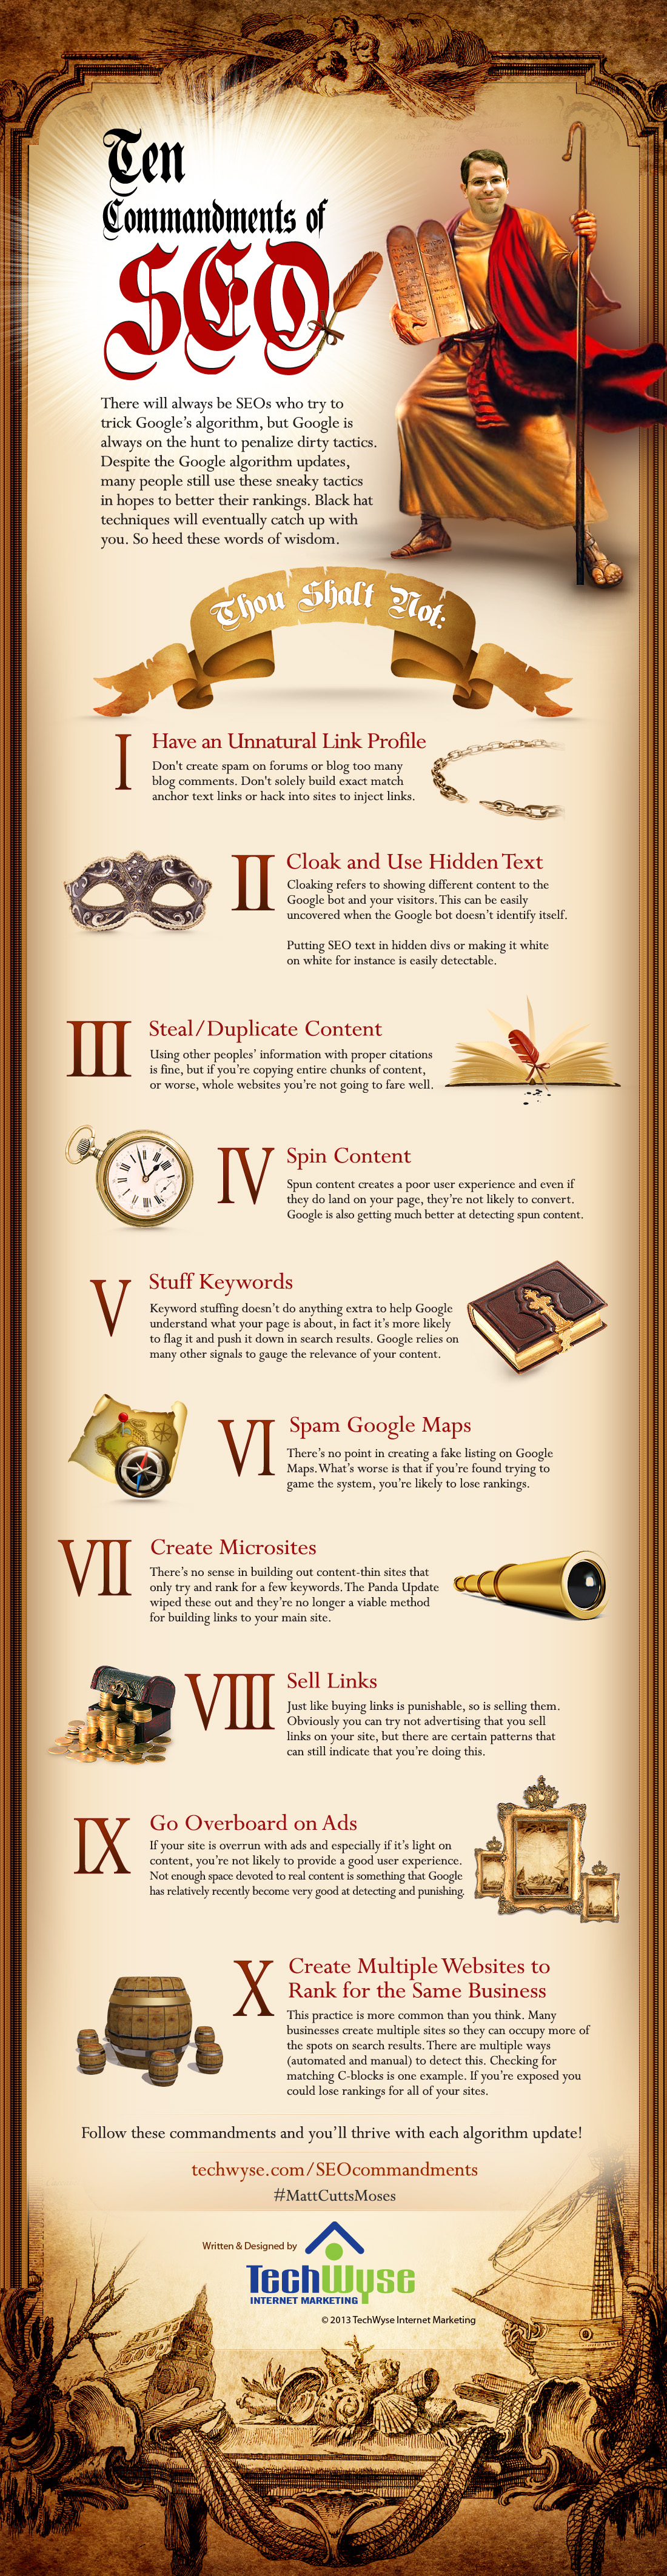 ten-commandments-seo